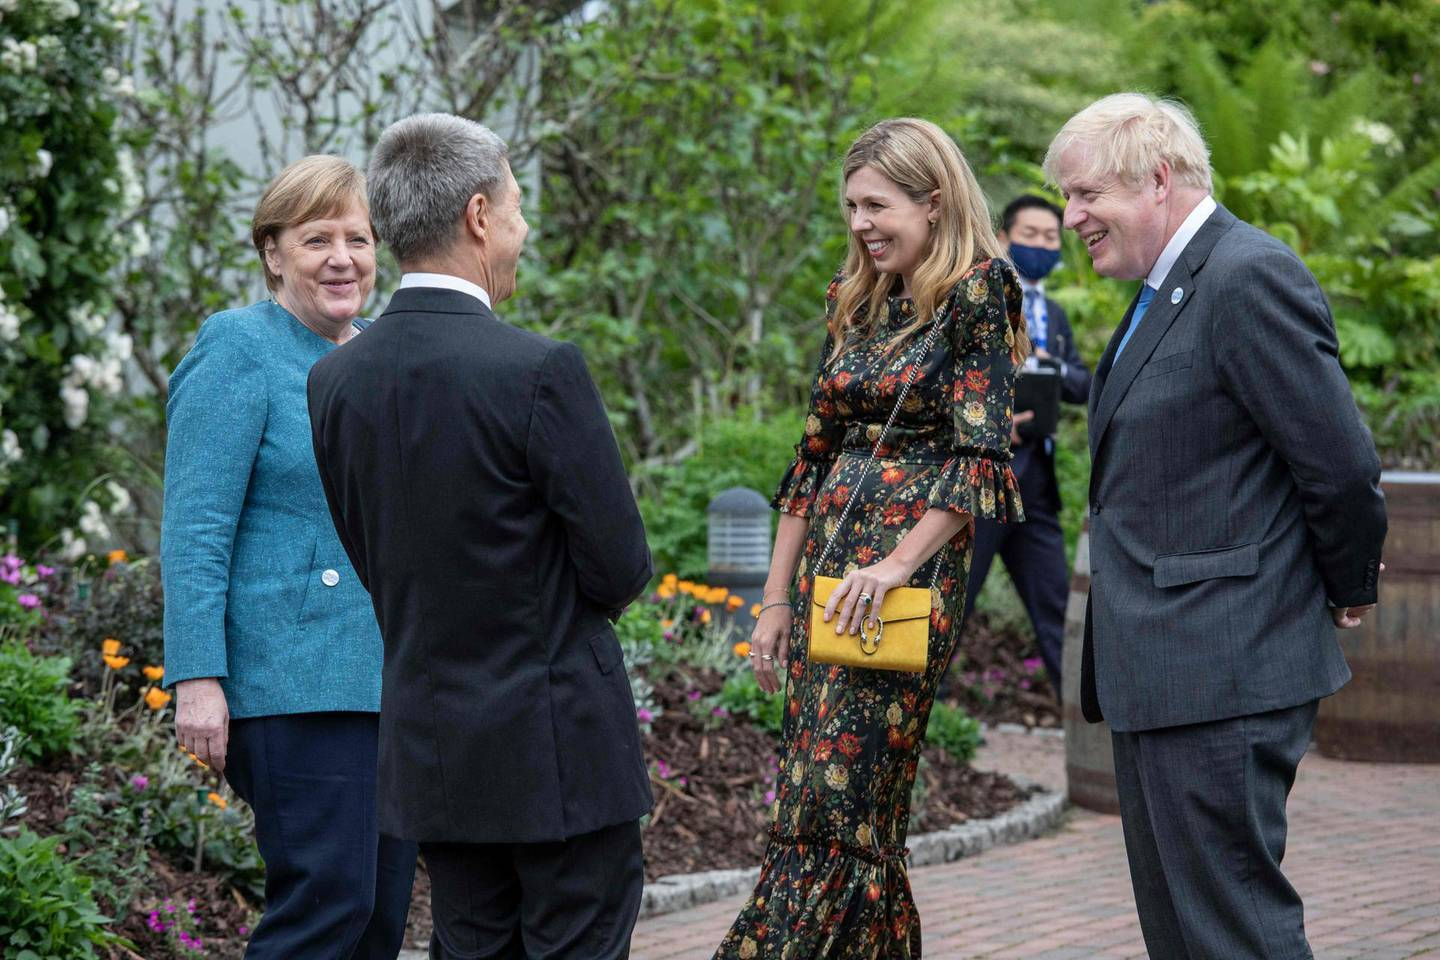 Germany's Chancellor Angela Merkel (L) and her husband, Joachim Sauer (2nd L) speak to Britain's Prime Minister Boris Johnson (R) and his wife Carrie Johnson at a reception with G7 leaders at The Eden Project in south west England on June 11, 2021. G7 leaders from Canada, France, Germany, Italy, Japan, the UK and the United States meet this weekend for the first time in nearly two years, for three-day talks in Carbis Bay, Cornwall. / AFP / POOL / Jack Hill